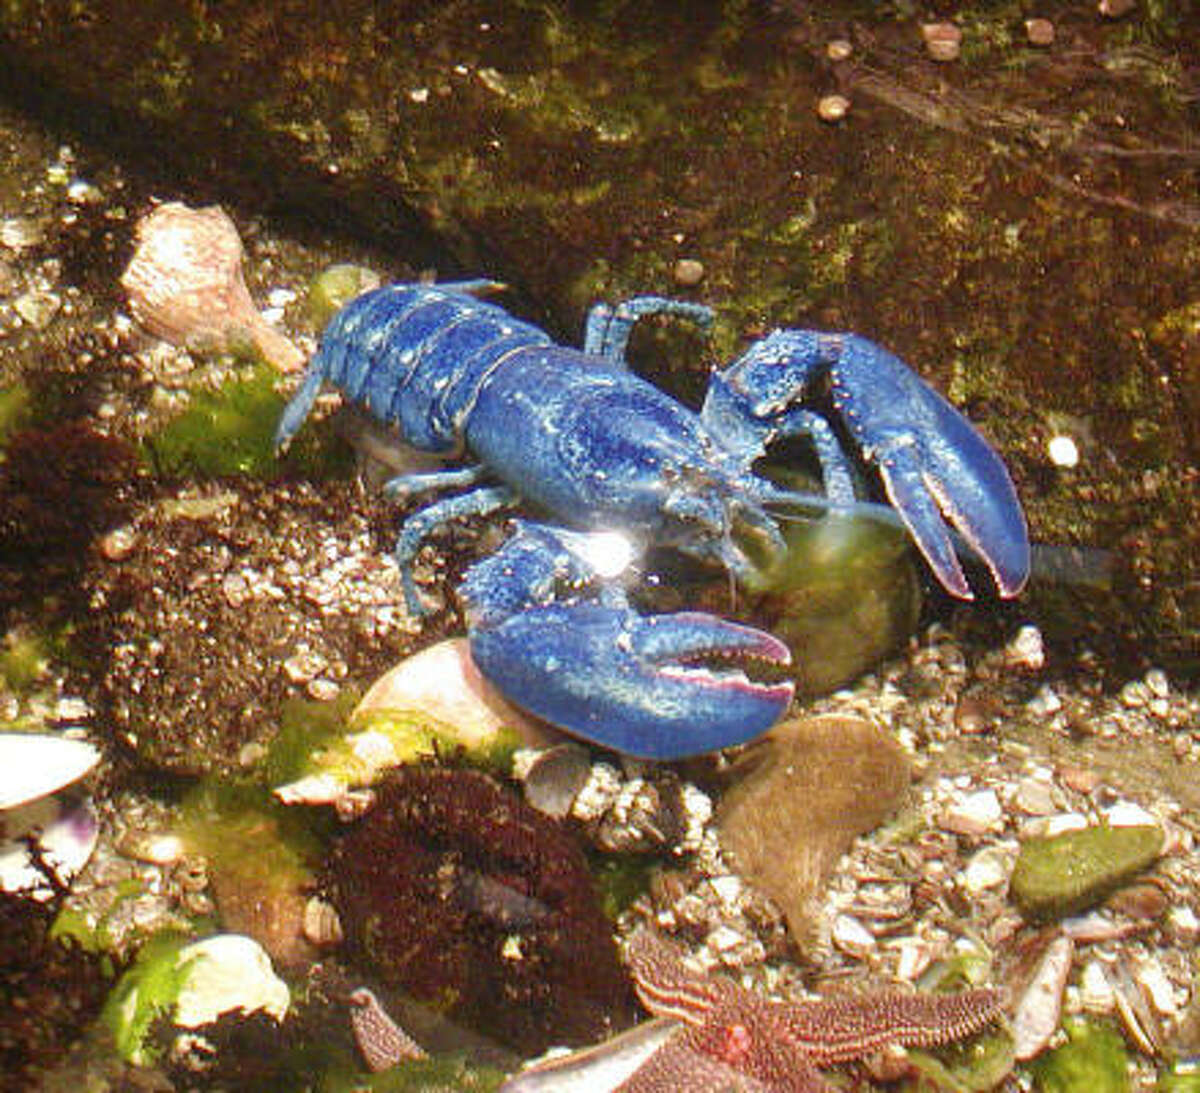 In this 2005 photo provided by the Audubon Society of Rhode Island, a blue lobster is seen. The female lobster has molted and that means her blue color is extremely bright and intensely hued. Blue lobsters are extremely rare.